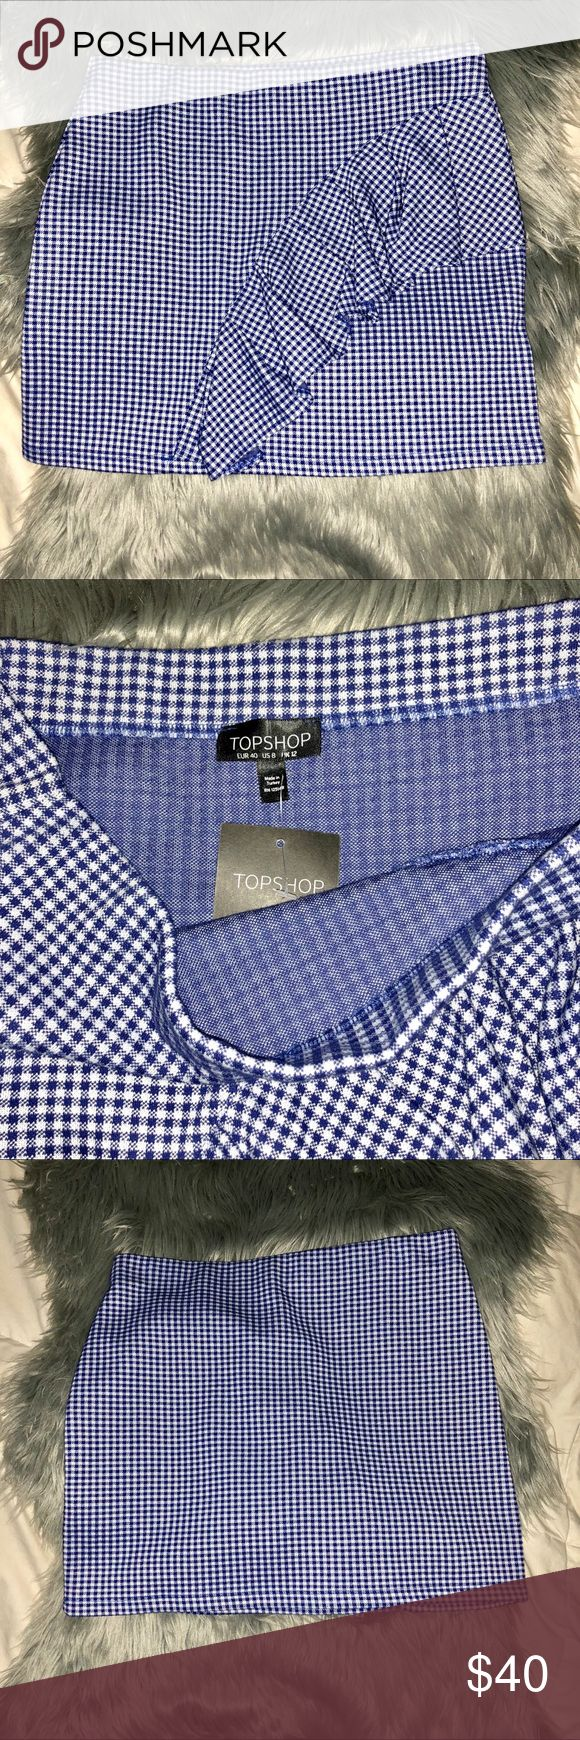 NWT Topshop Gingham Ruffle Jersey Mini Skirt NEW WITH TAGS; 51% Polyester, 49% Cotton; no trades;   Length: 16 inches Topshop Skirts Mini